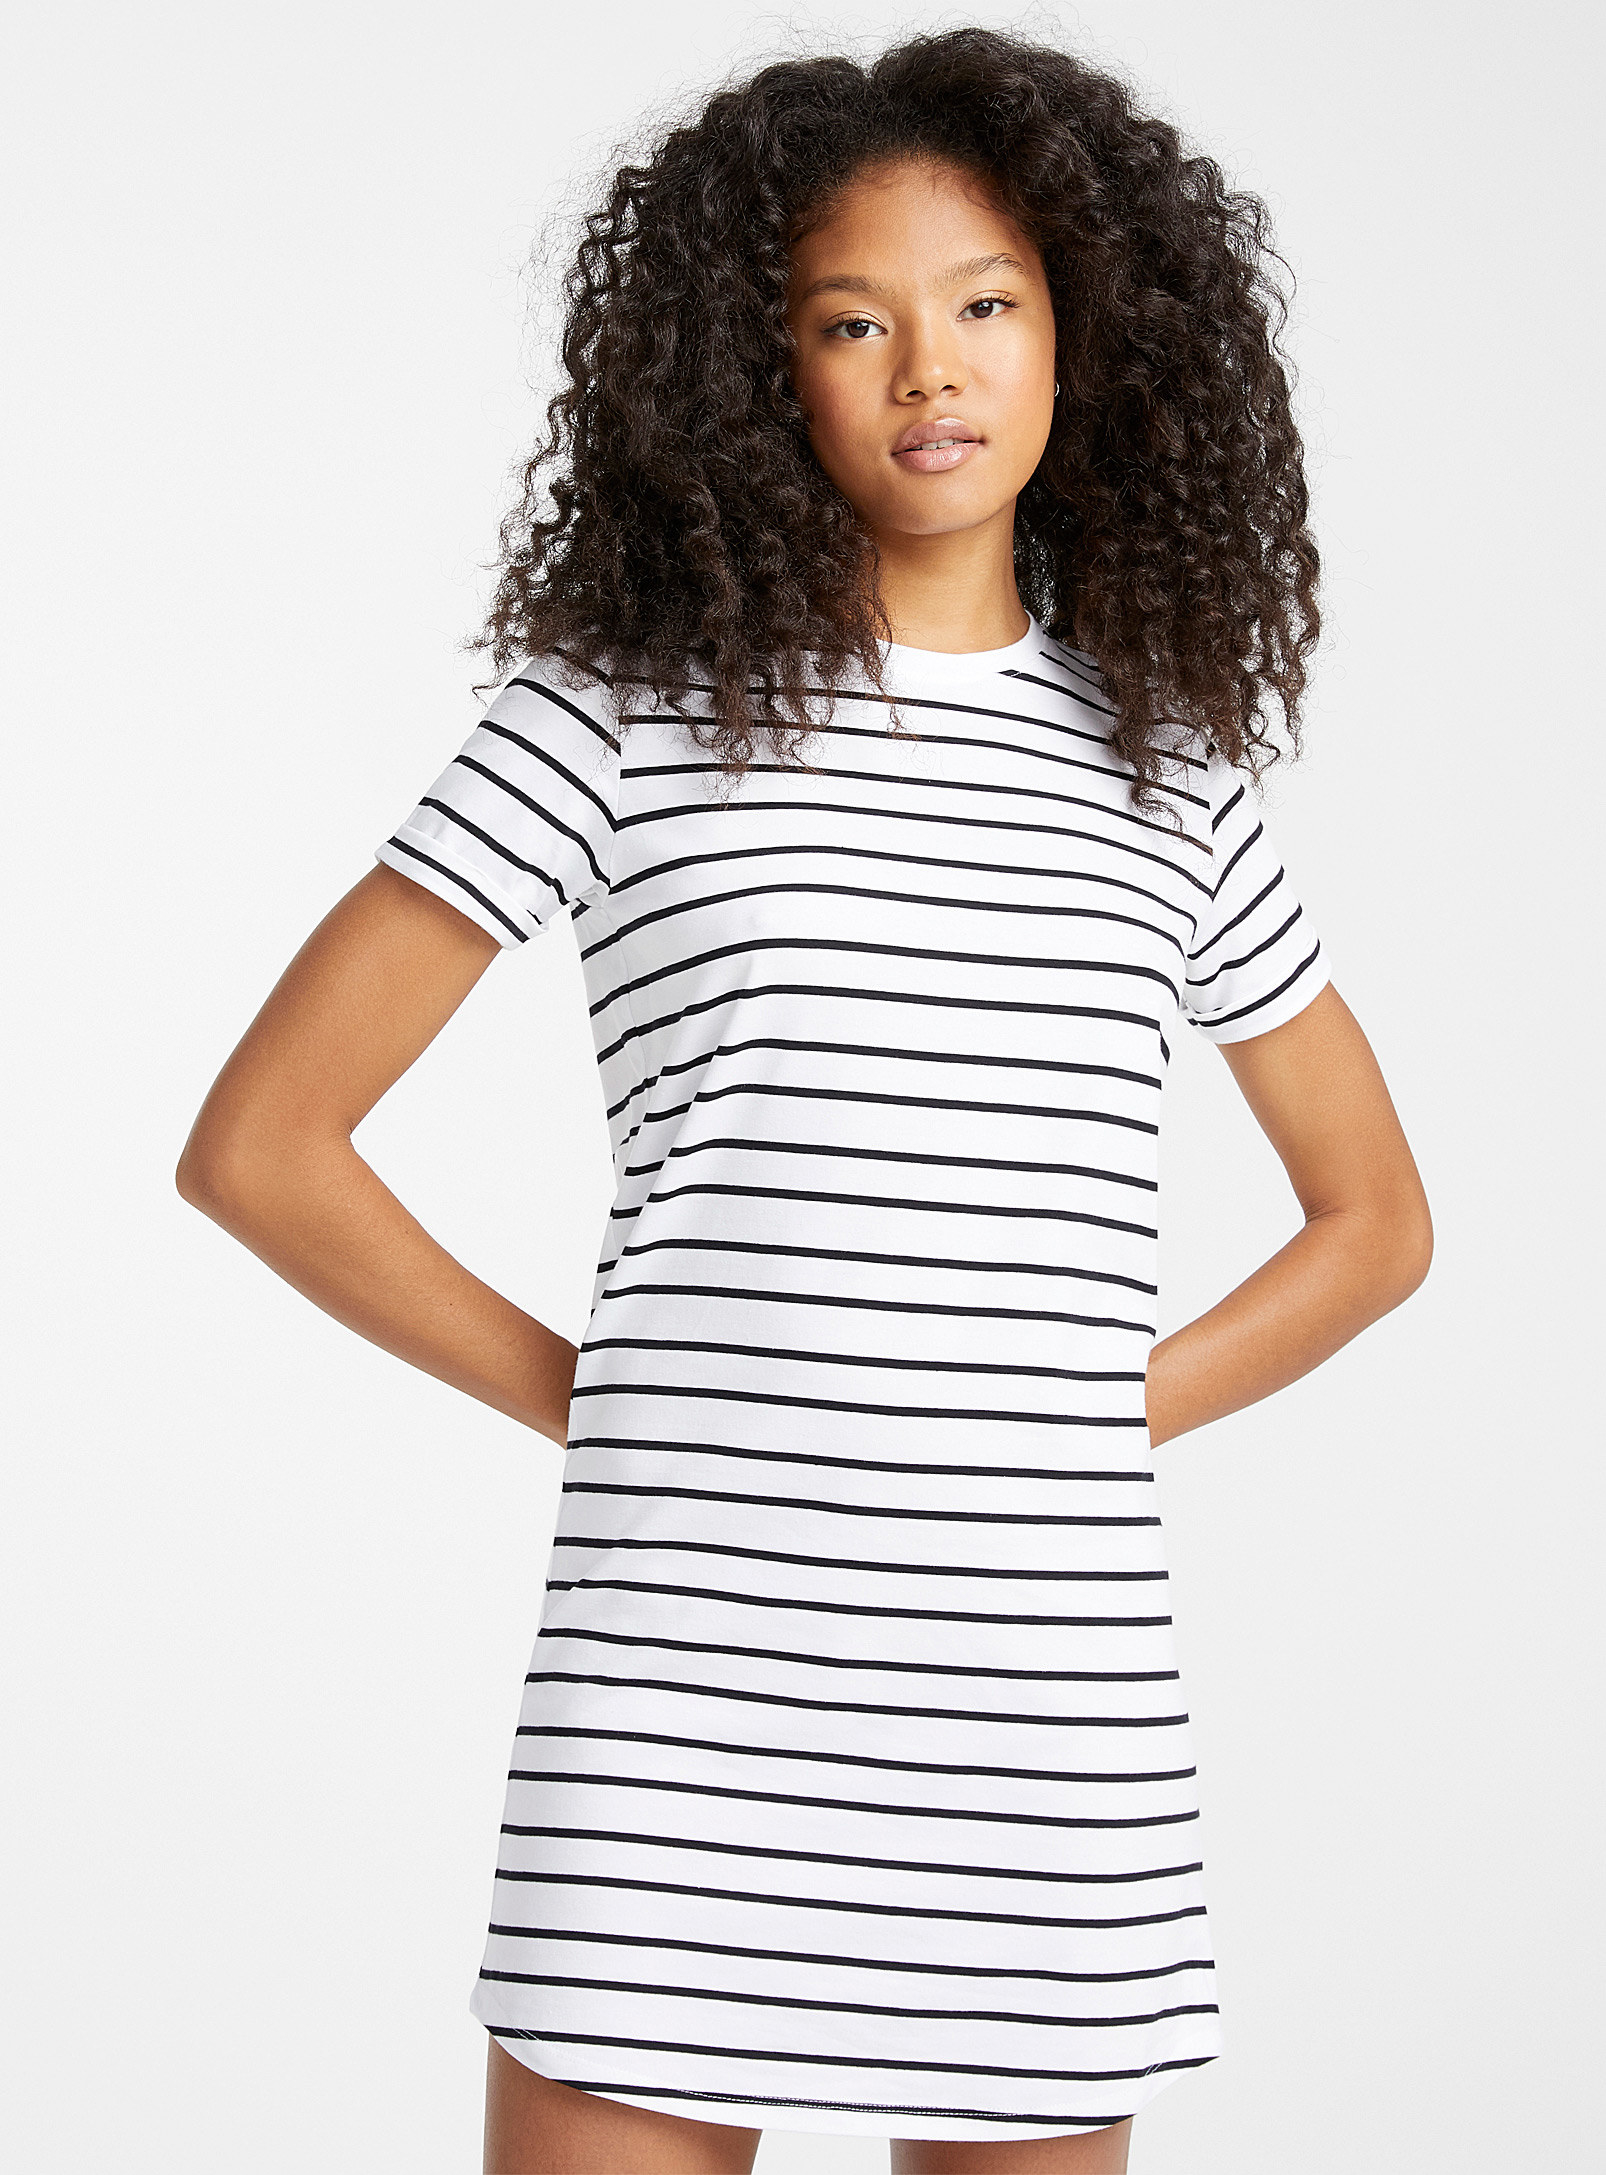 A person wearing a T-shirt dress with a striped pattern